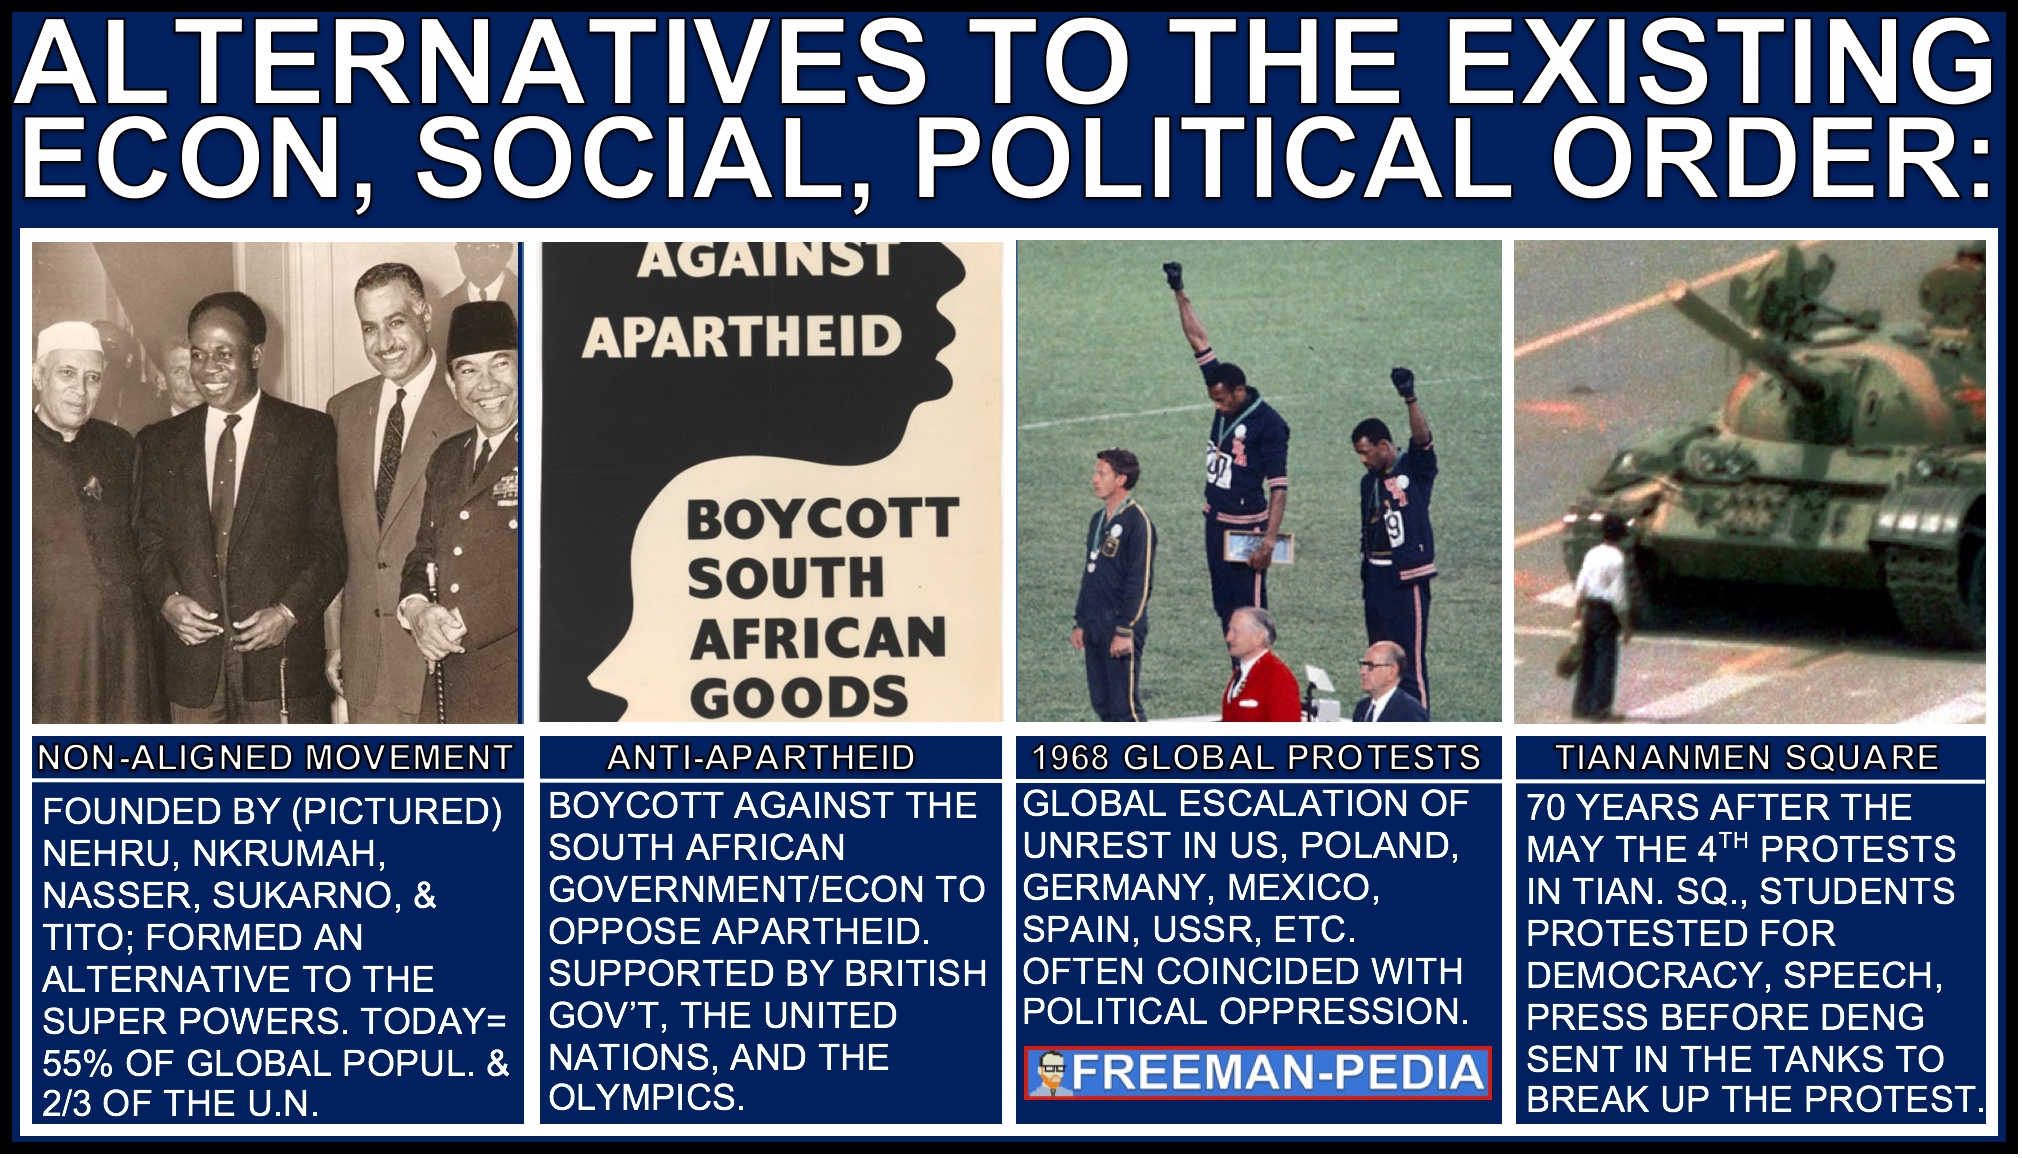 B. Groups and individuals, including the  Non-Aligned Movement ,opposed and promoted alternatives ( Anti-apartheid movement in South Africa , P articipants in the Global uprisings of 1968 , Tiananmen Square protesters that promoted democracy in China ) to the existing economic, political, and social orders.